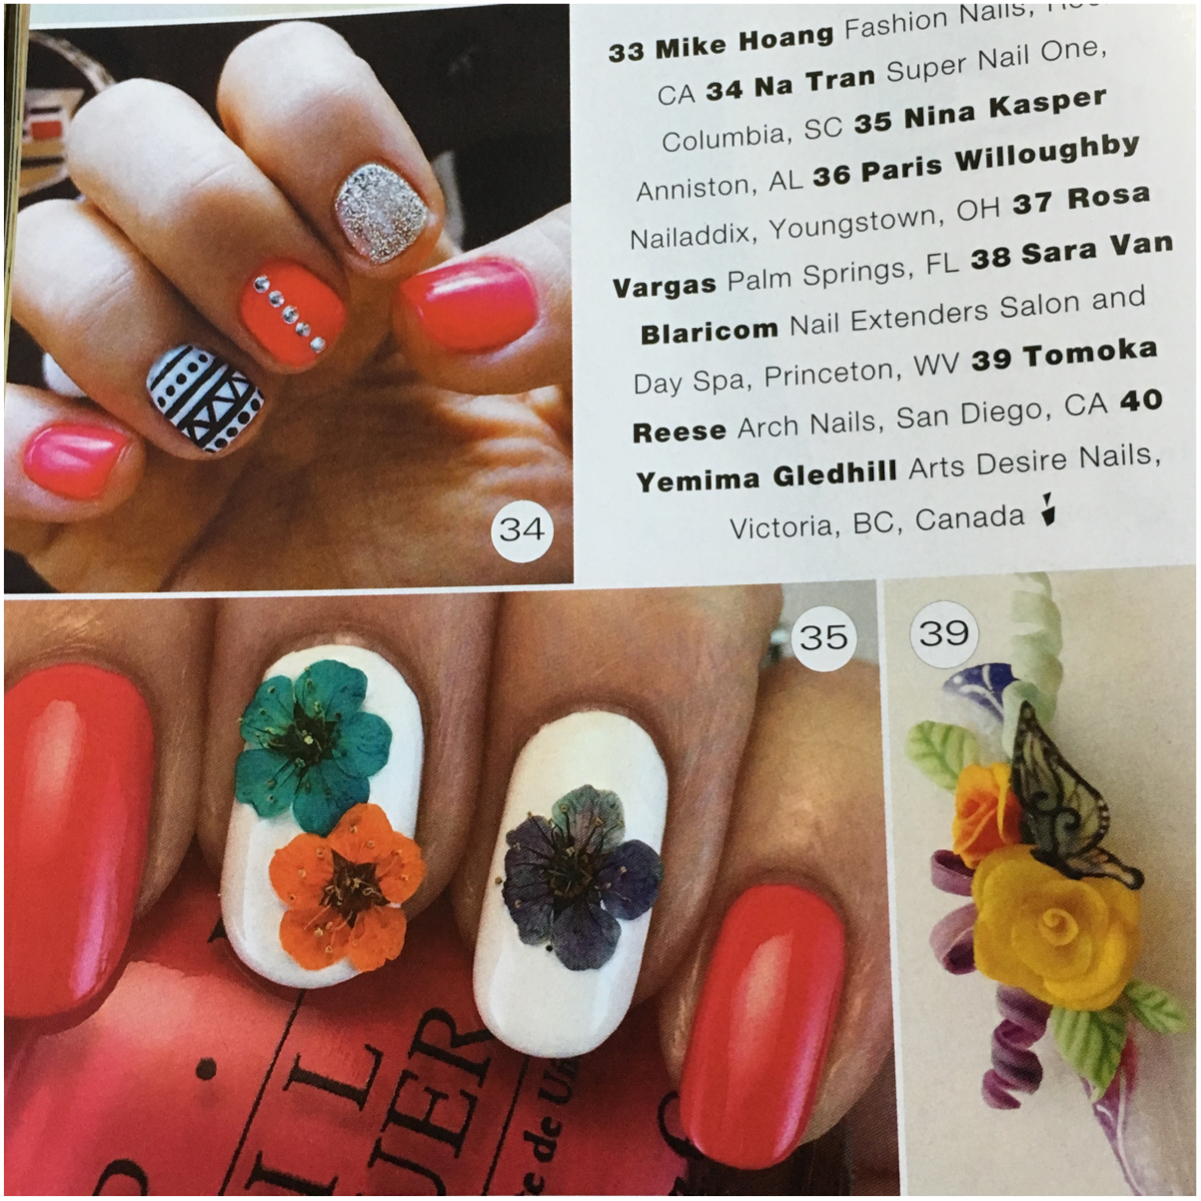 My Nails In Print